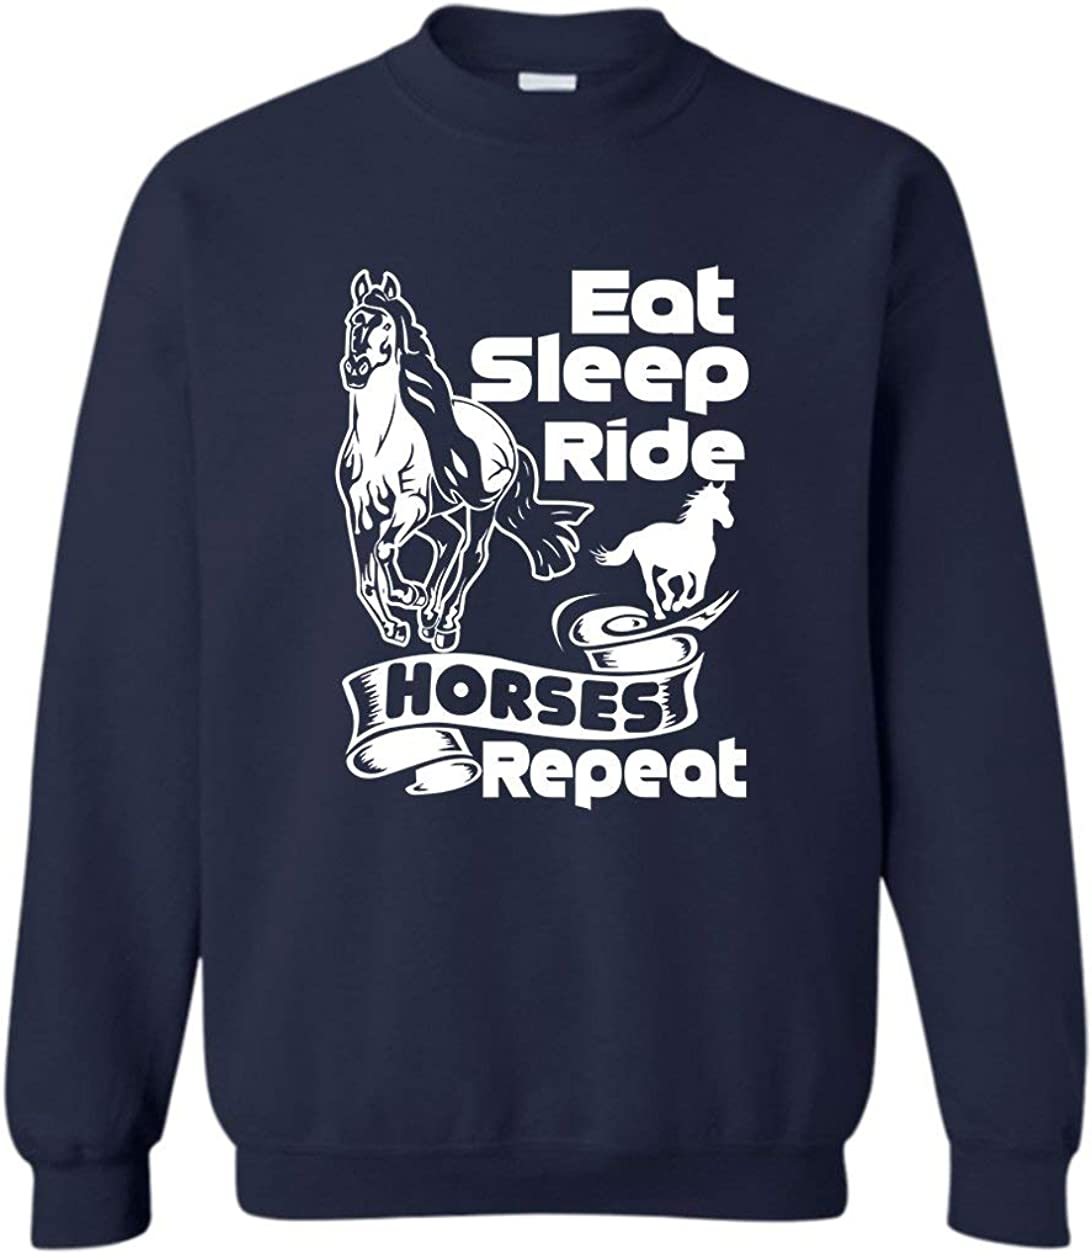 Sale Eat Sale special price Sleep Ride Horses Repeat Long Sleeve Sweats Pullover Tshirt